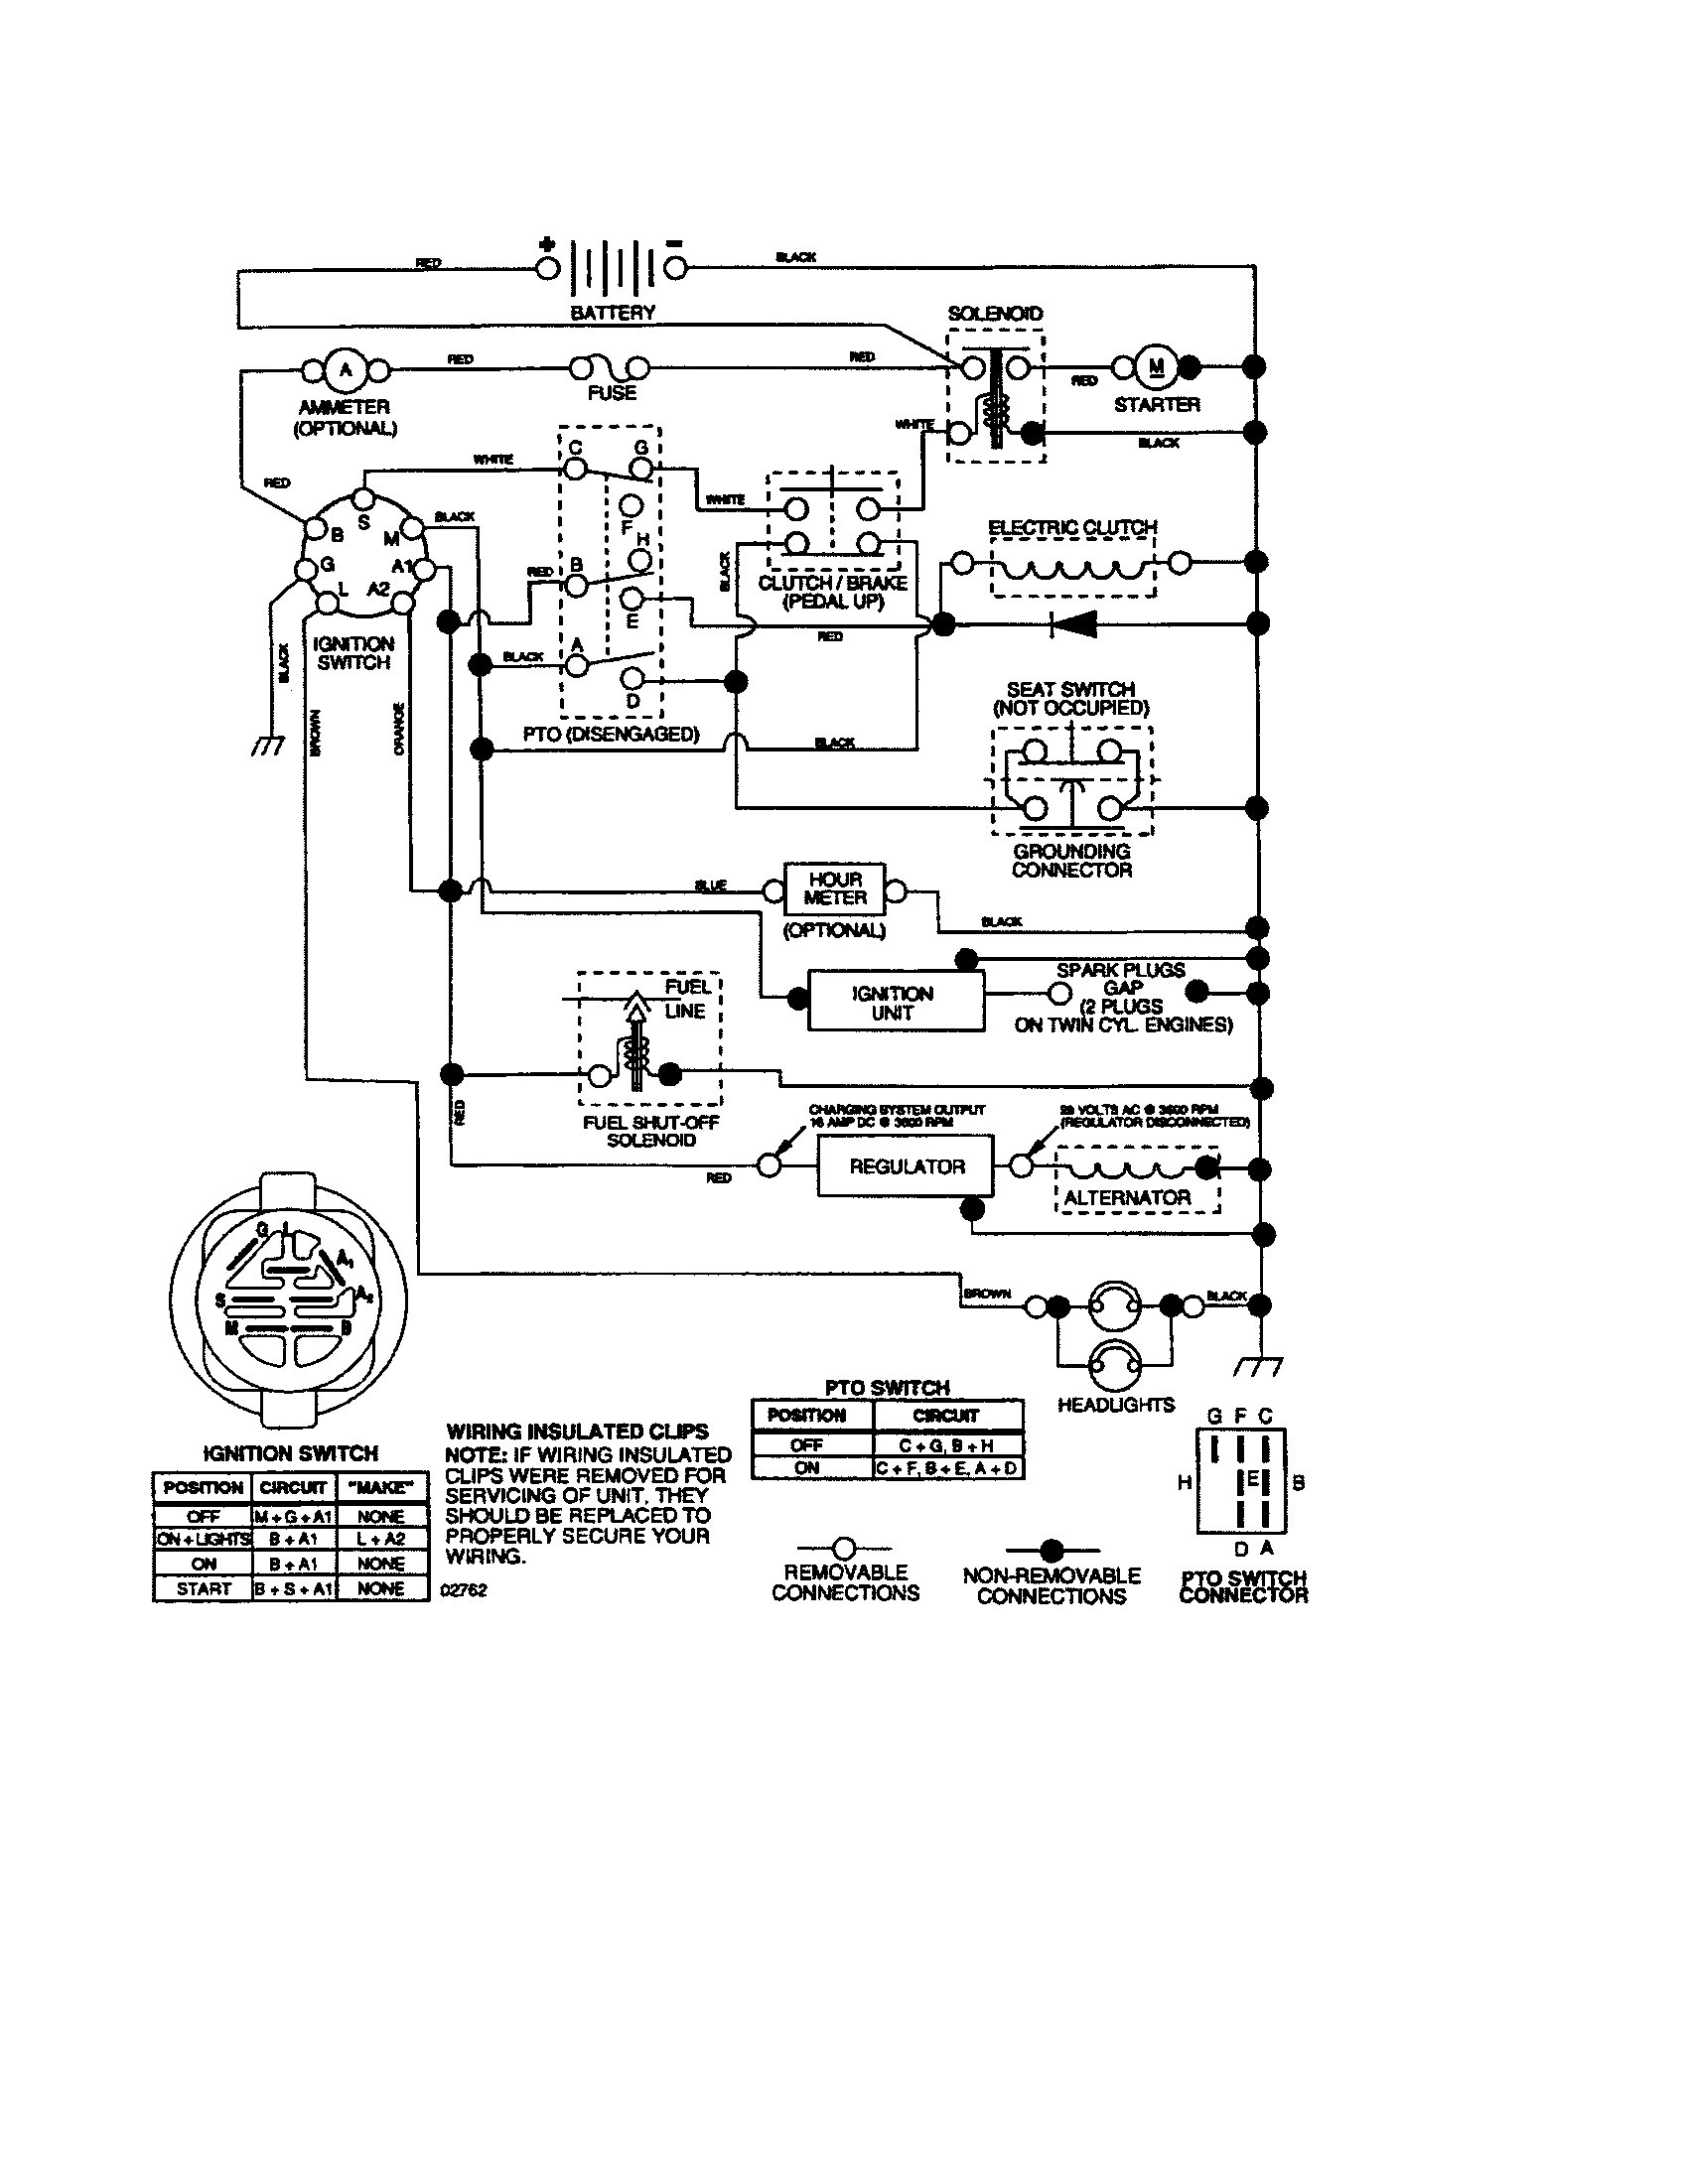 Craftsman Lawn Tractor Wiring Diagram Awesome